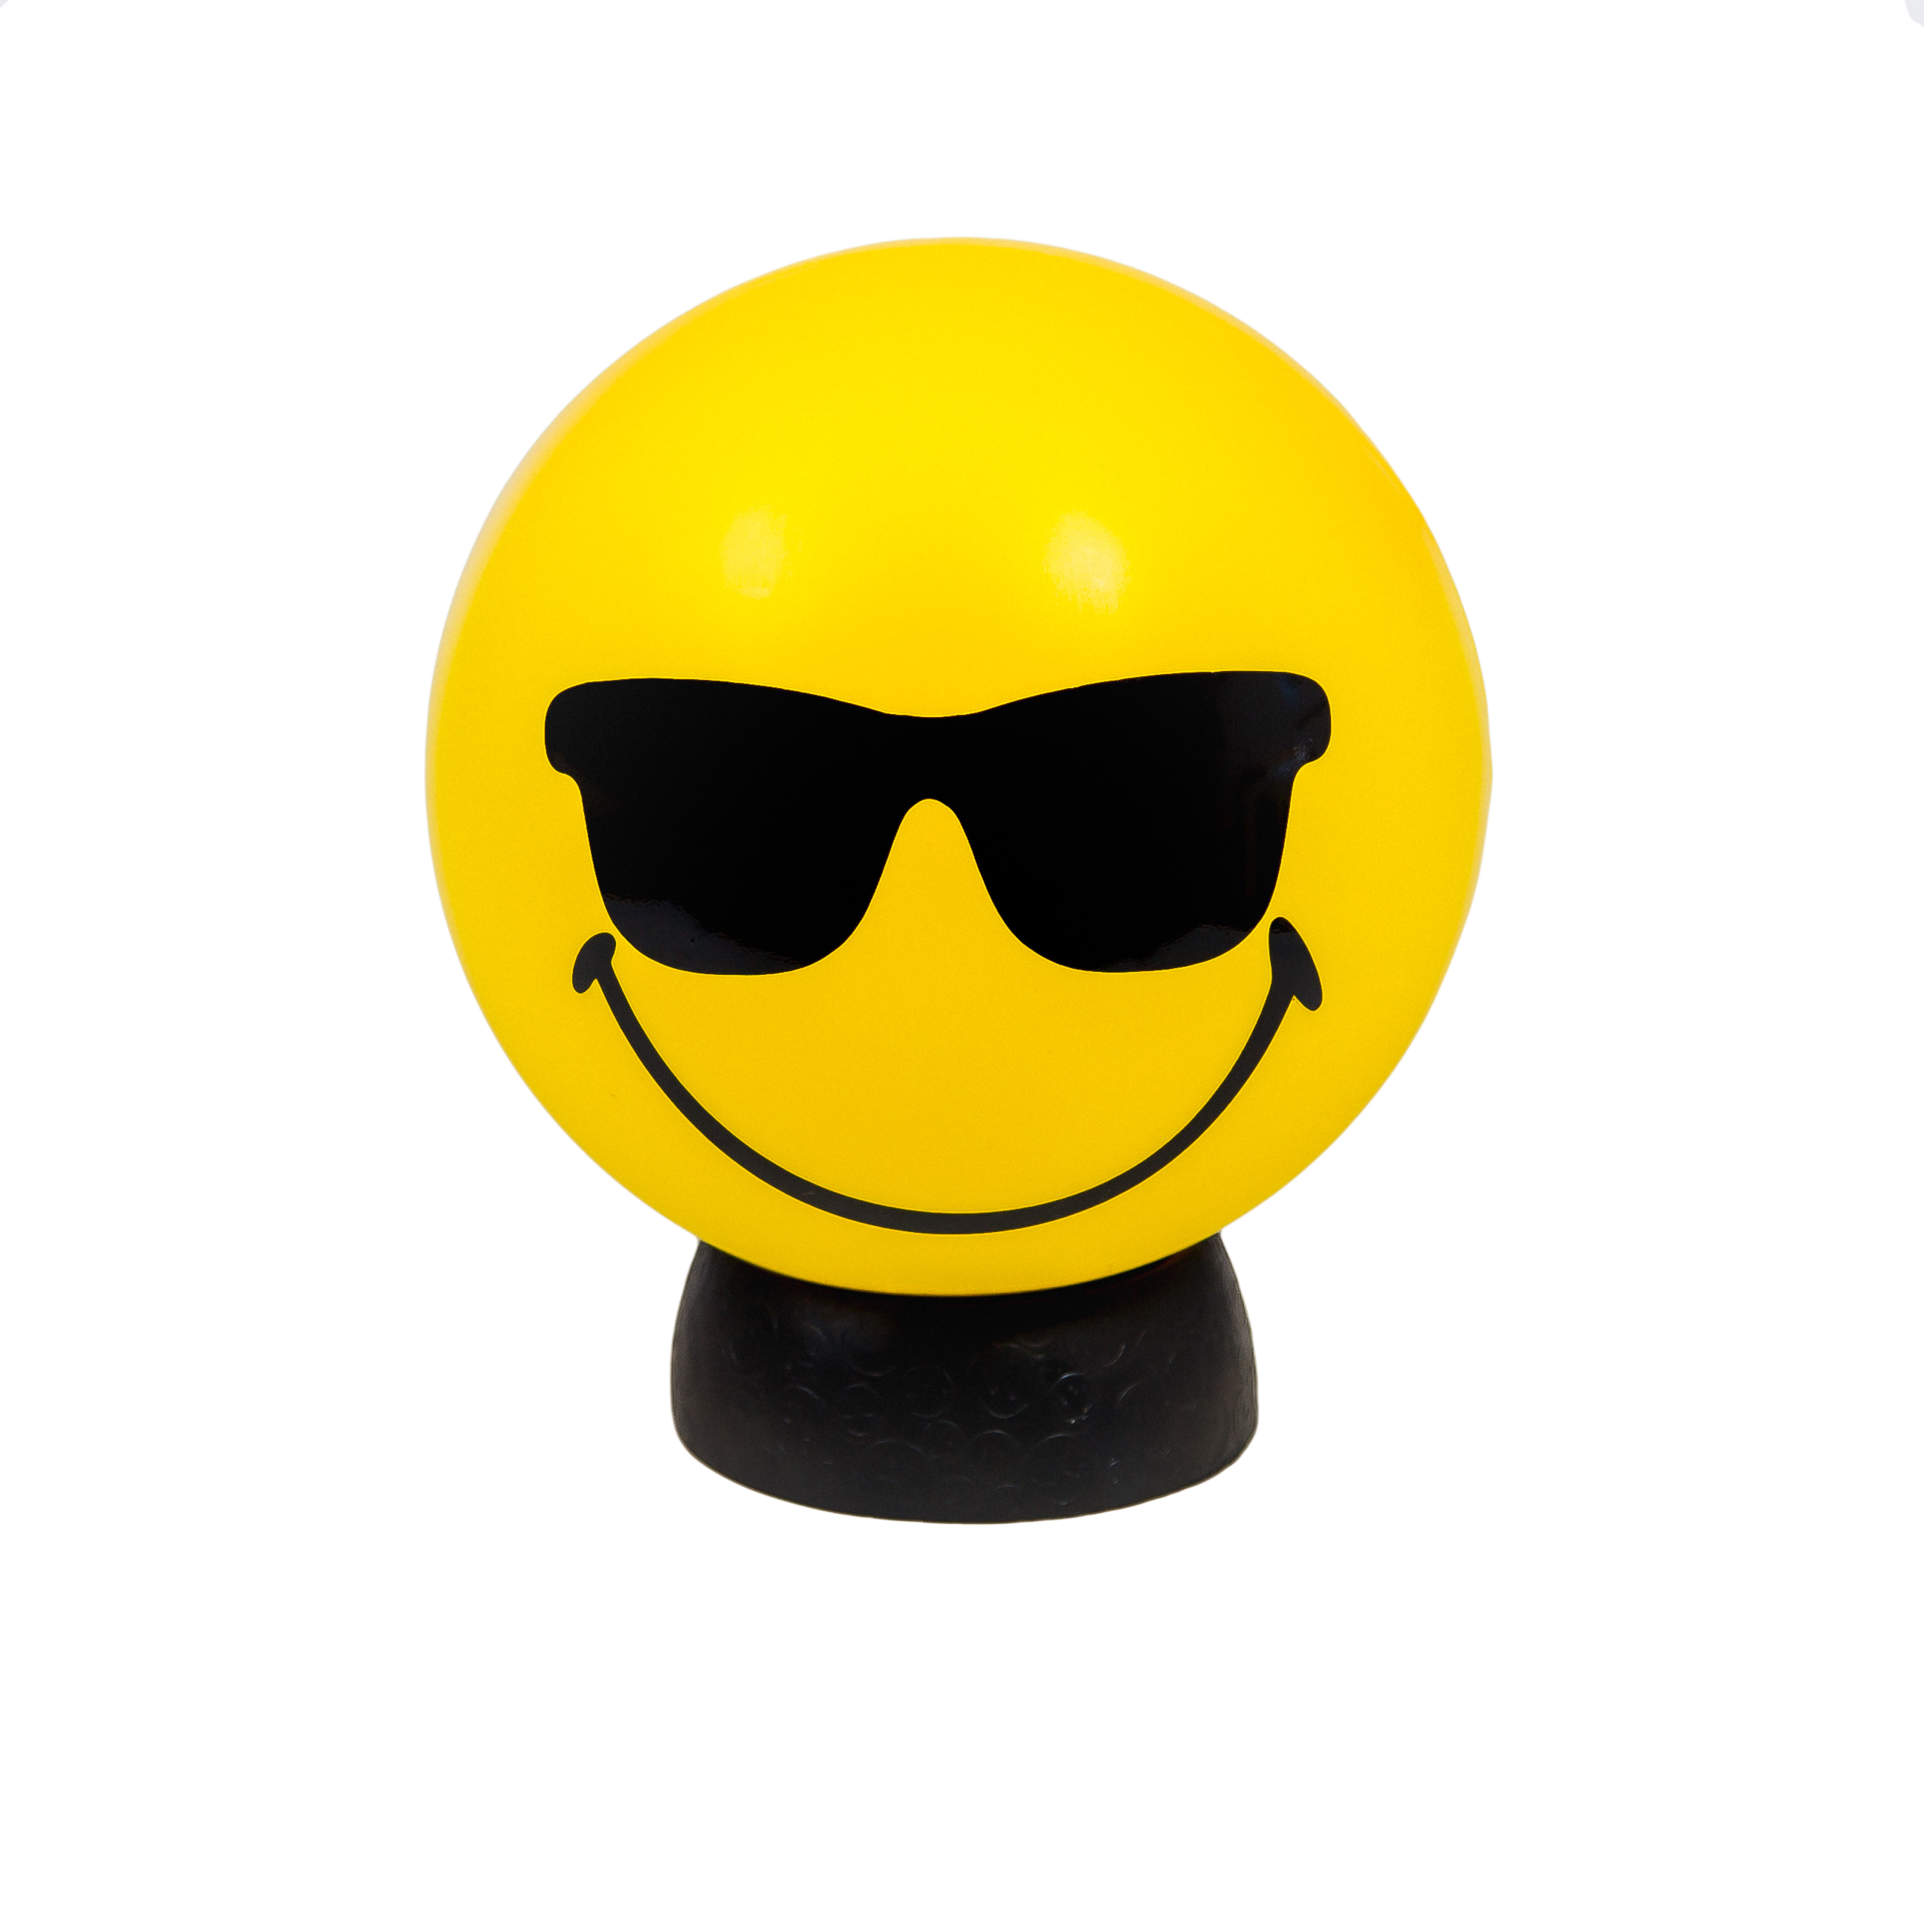 Cool Smiley Lamp | Sunglasses Emoji Lamp | Kids Lighting